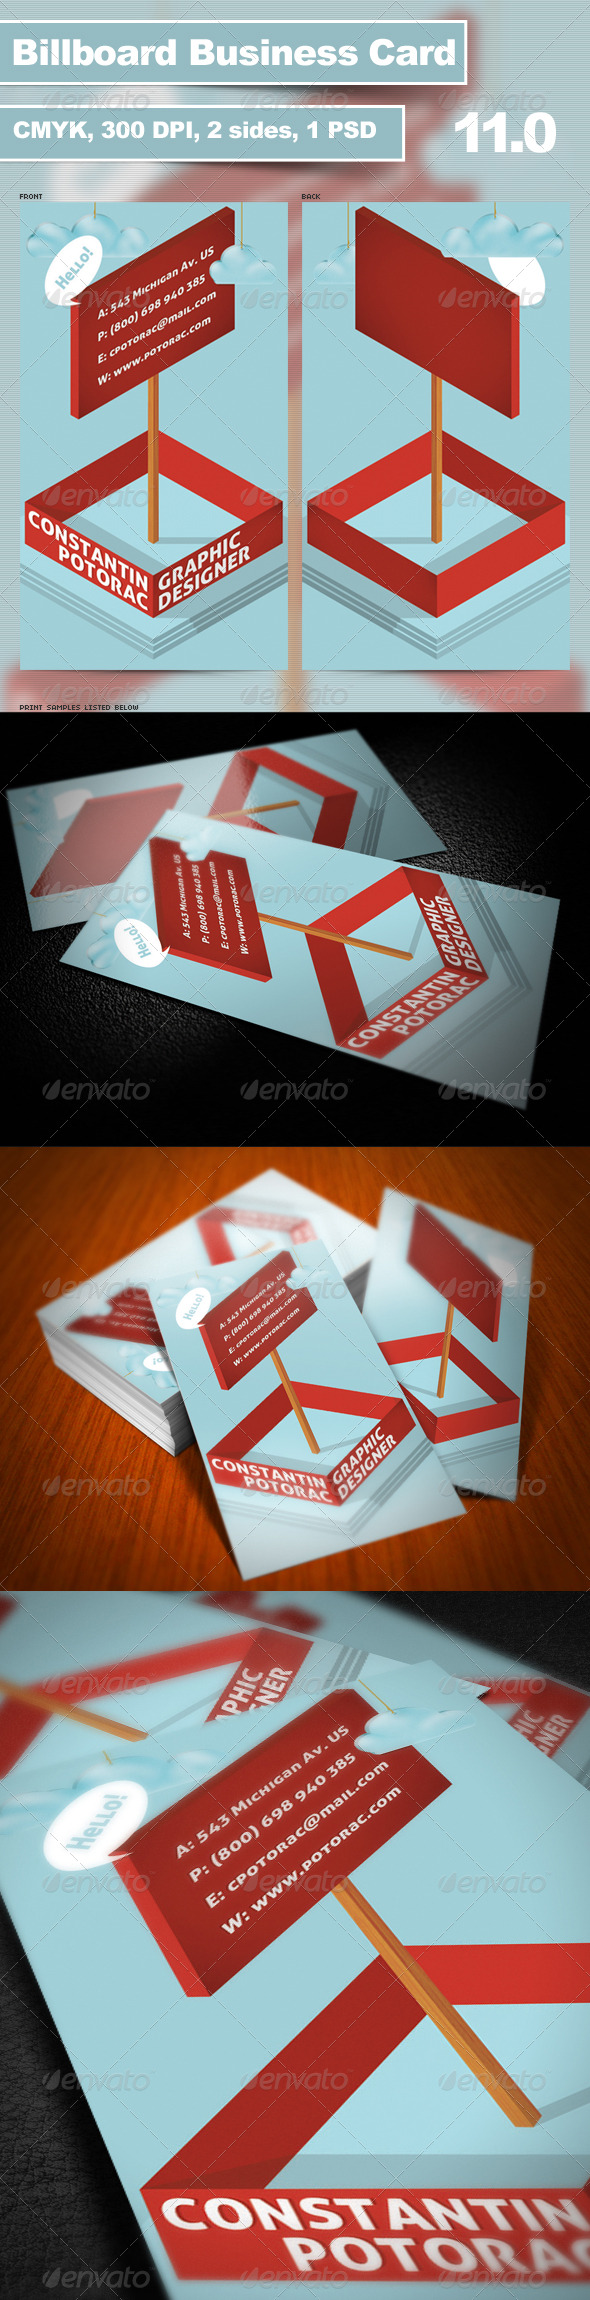 Billboard Business Card 11.0 - Creative Business Cards